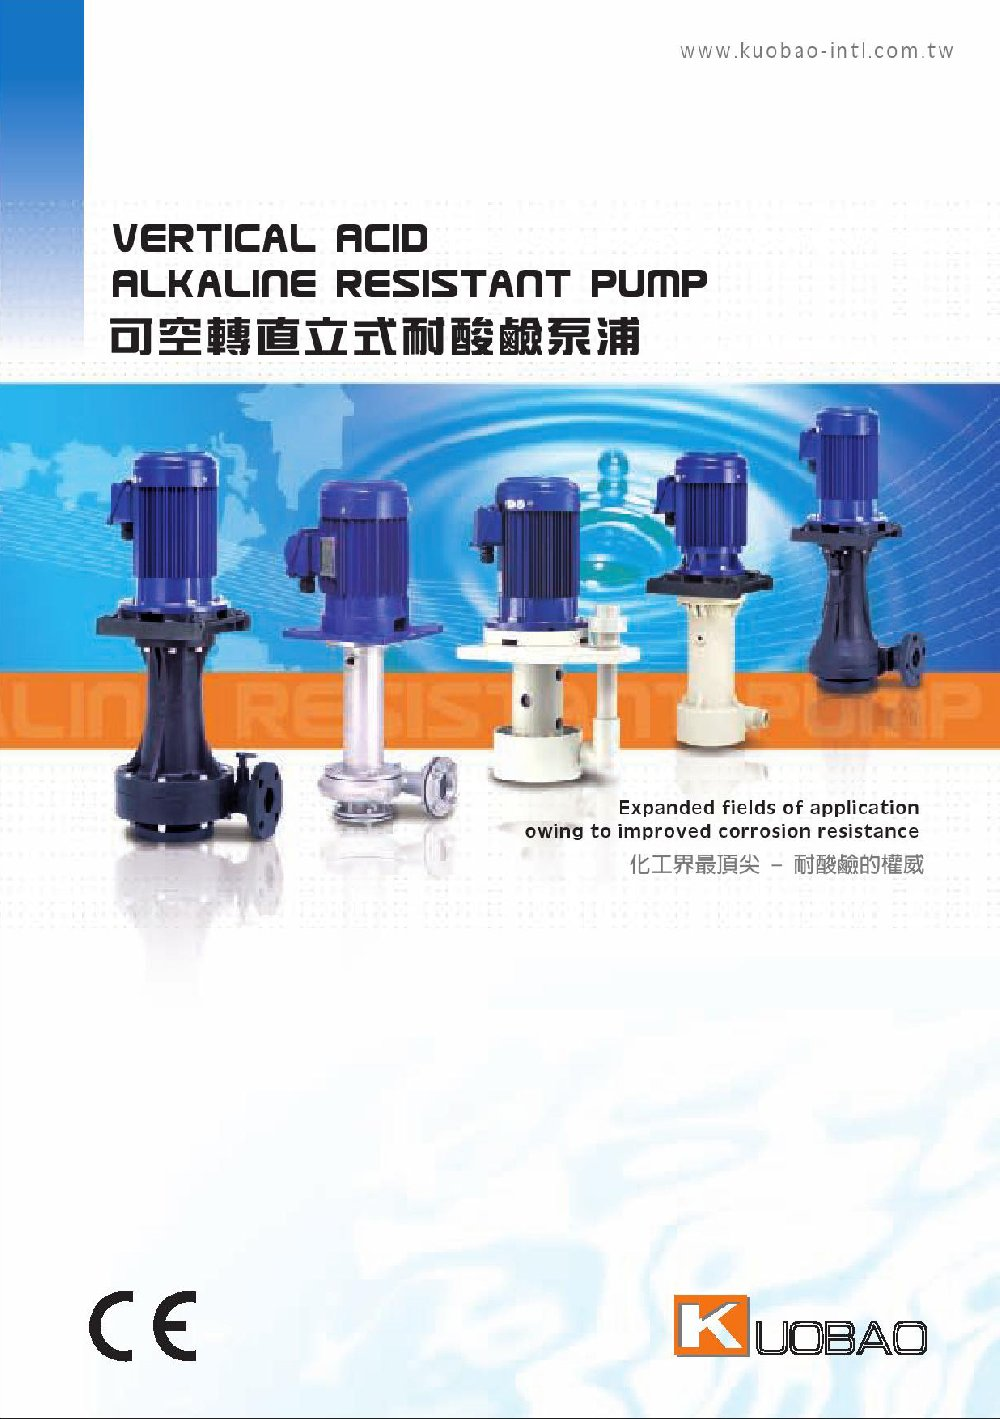 Kuobao Vertical Pump